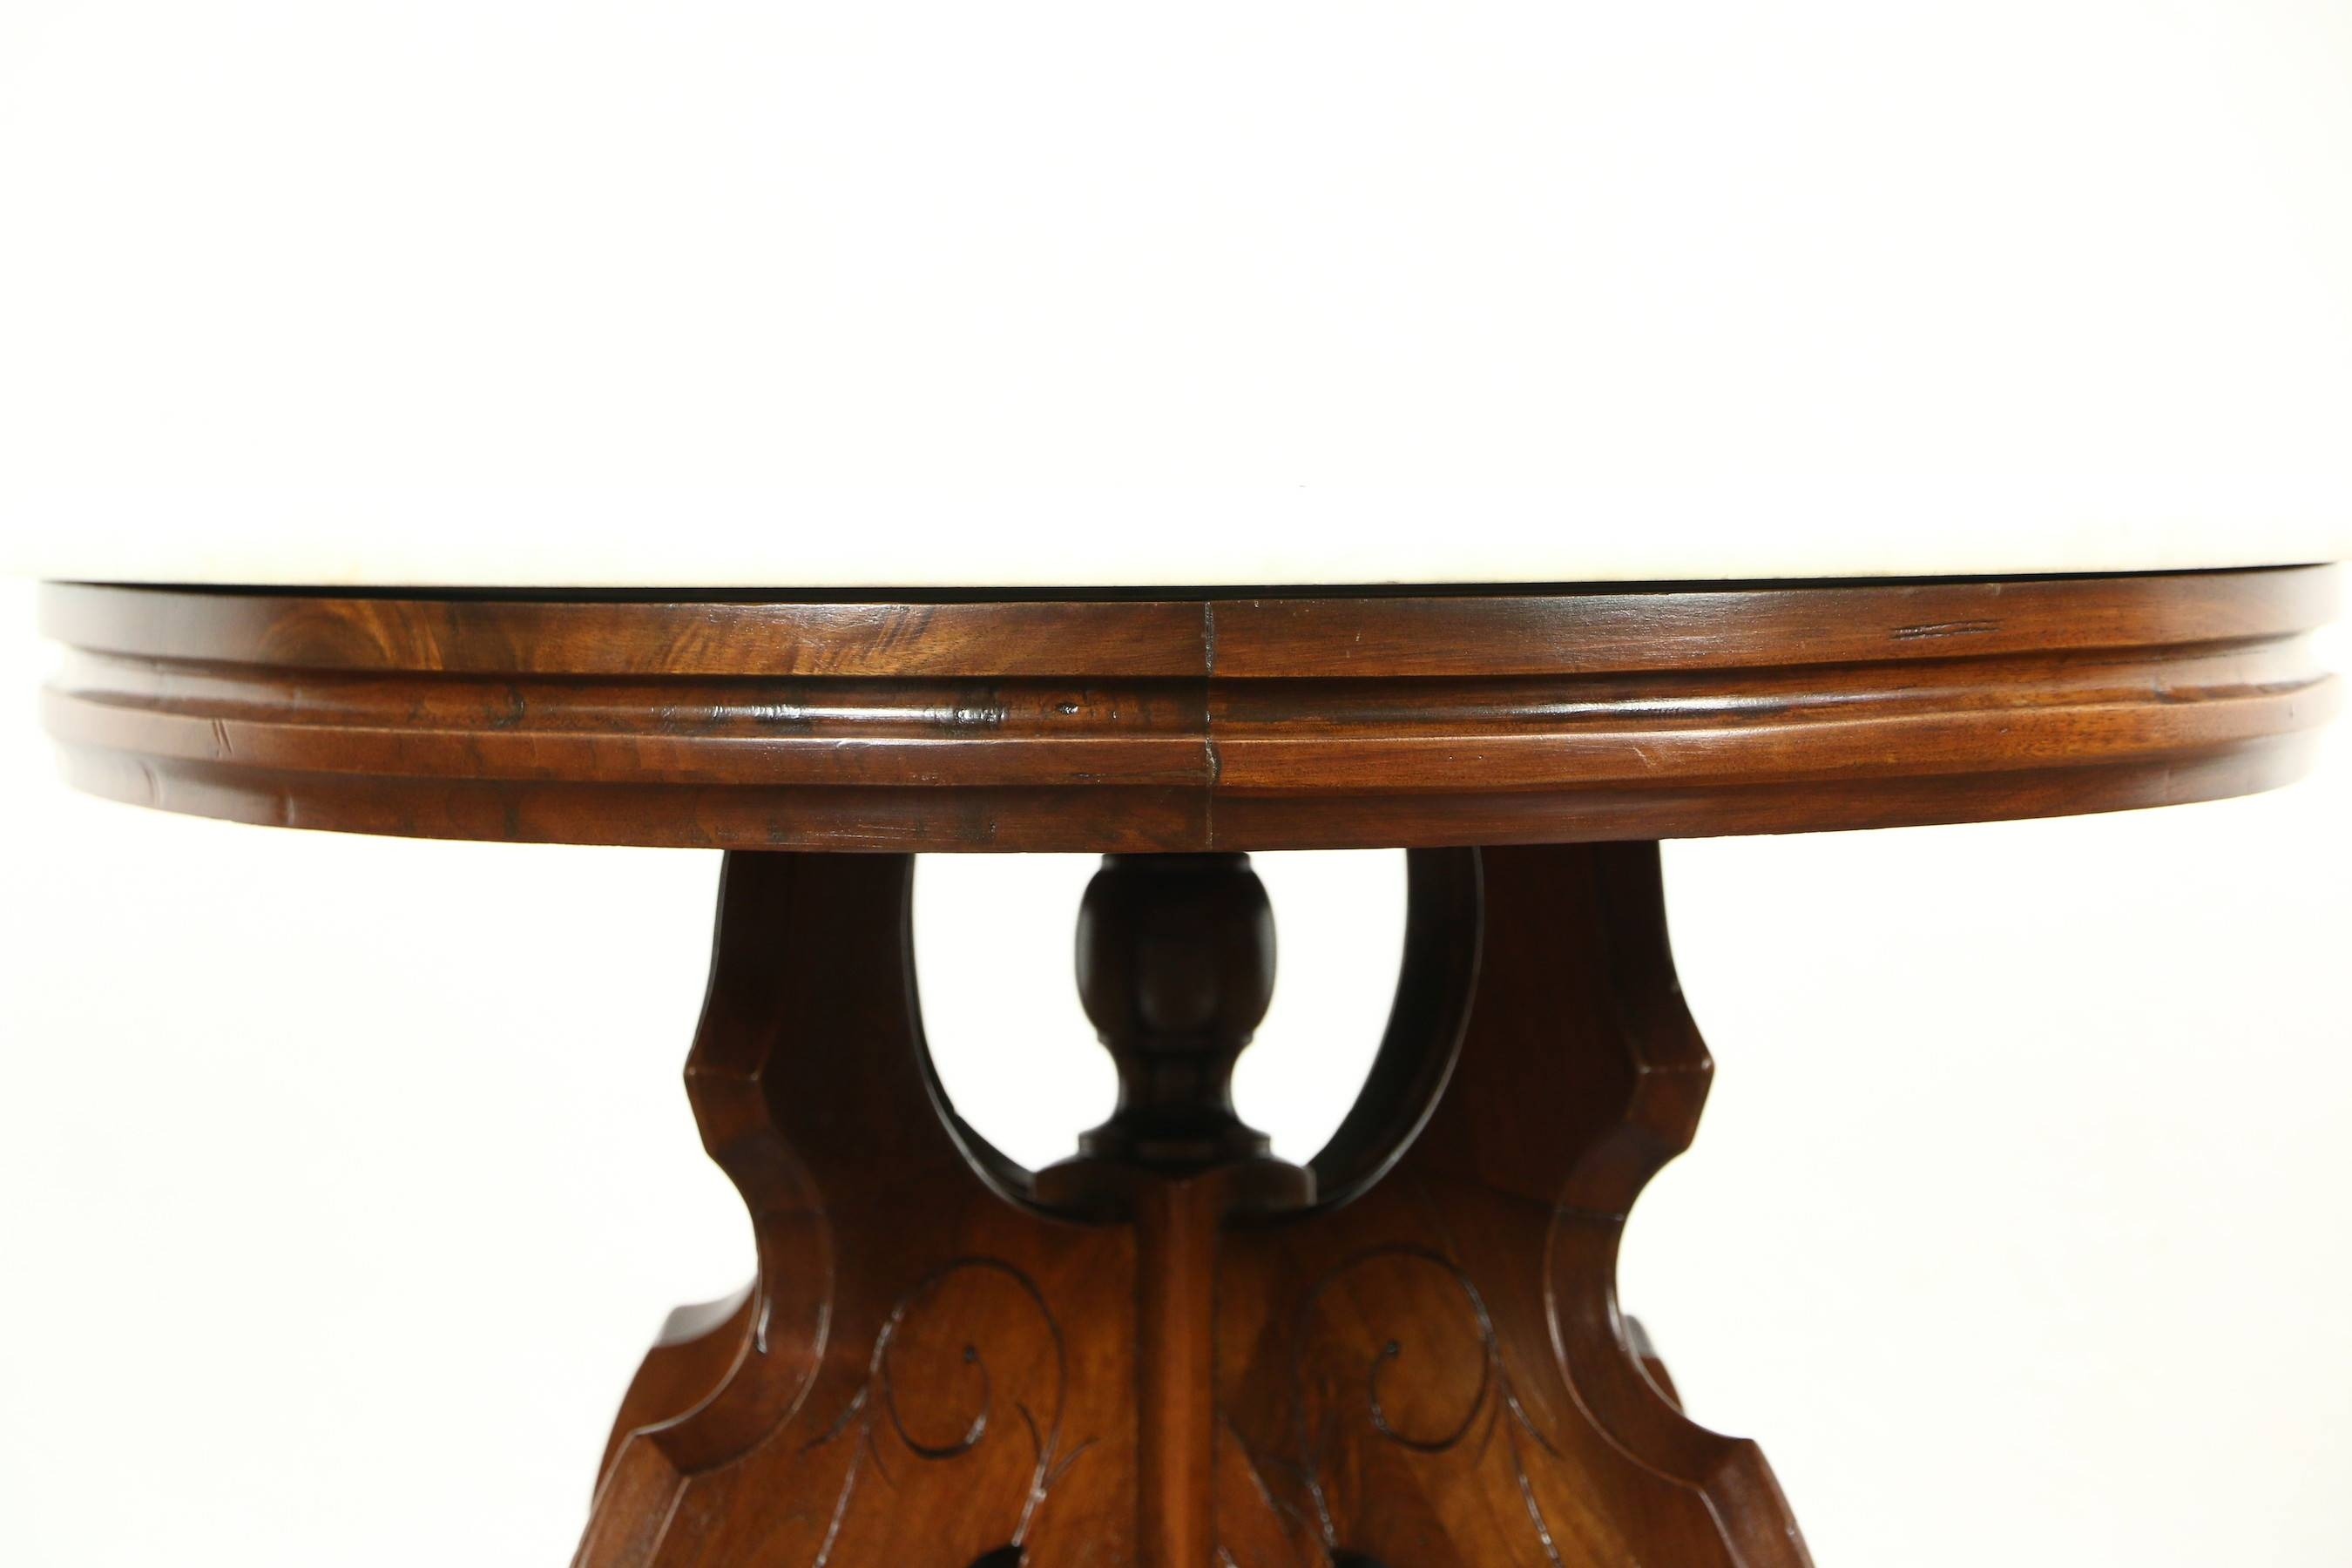 Sold - Victorian 1880's Antique Oval Marble Top Carved Walnut intended for Oval Walnut Coffee Tables (Image 24 of 30)